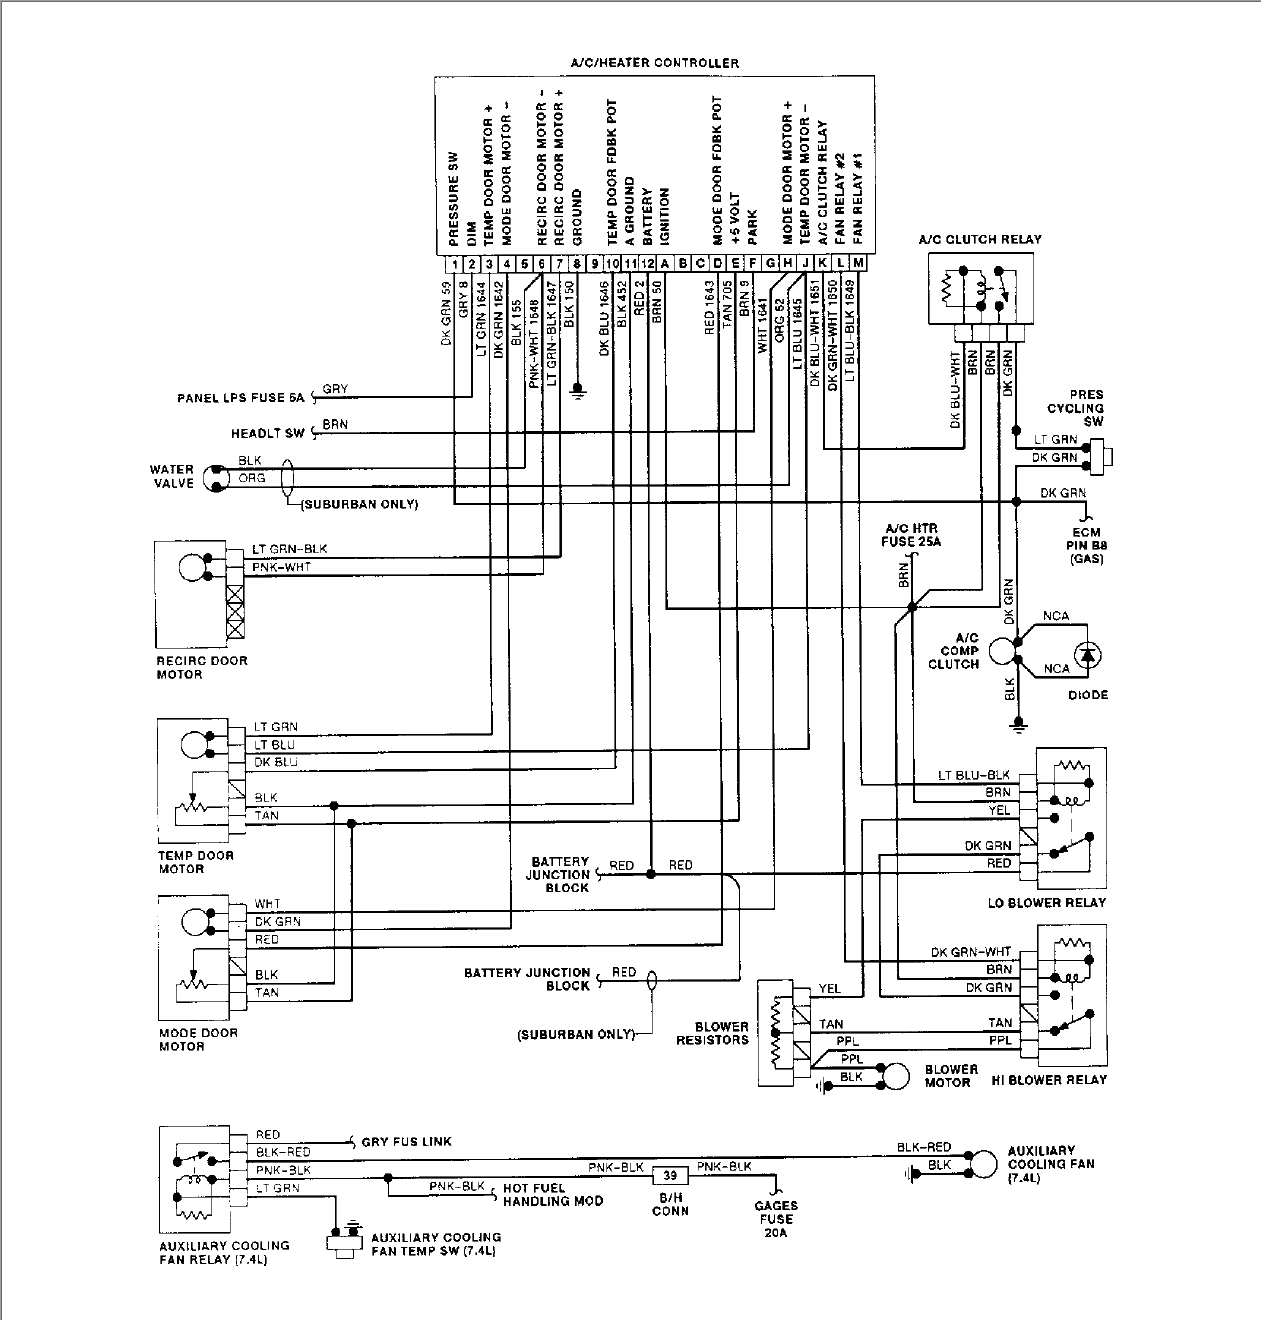 where do i ac relay on 92 chevy silverado unplug the connector from the pressure switch and insert a jumper wire between the two terminals in the connector